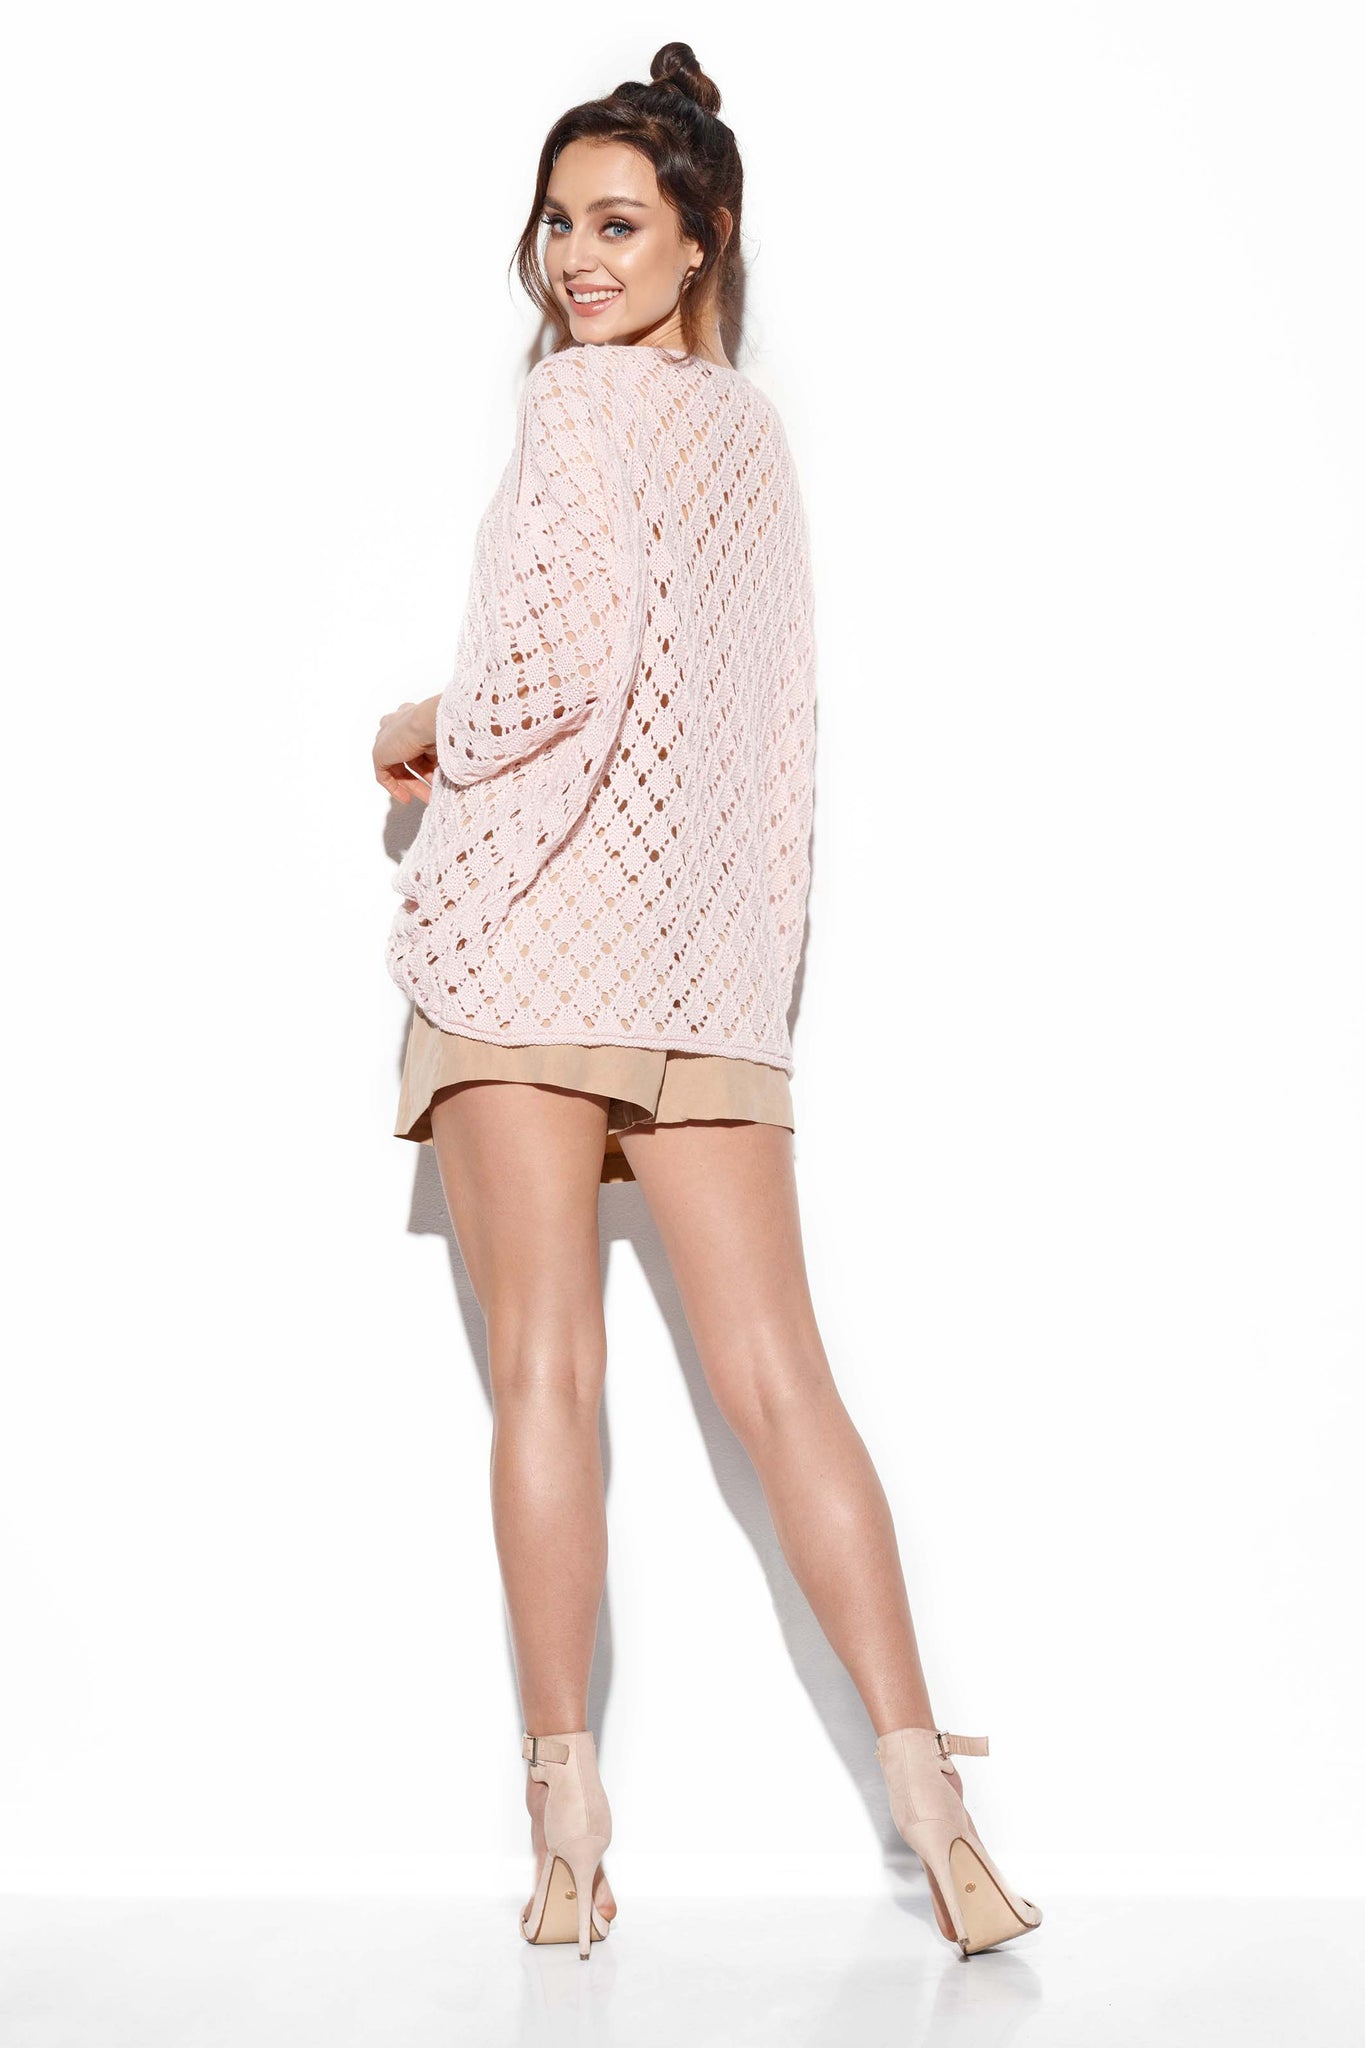 Openwork Sweater with Bare Shoulders 4357511